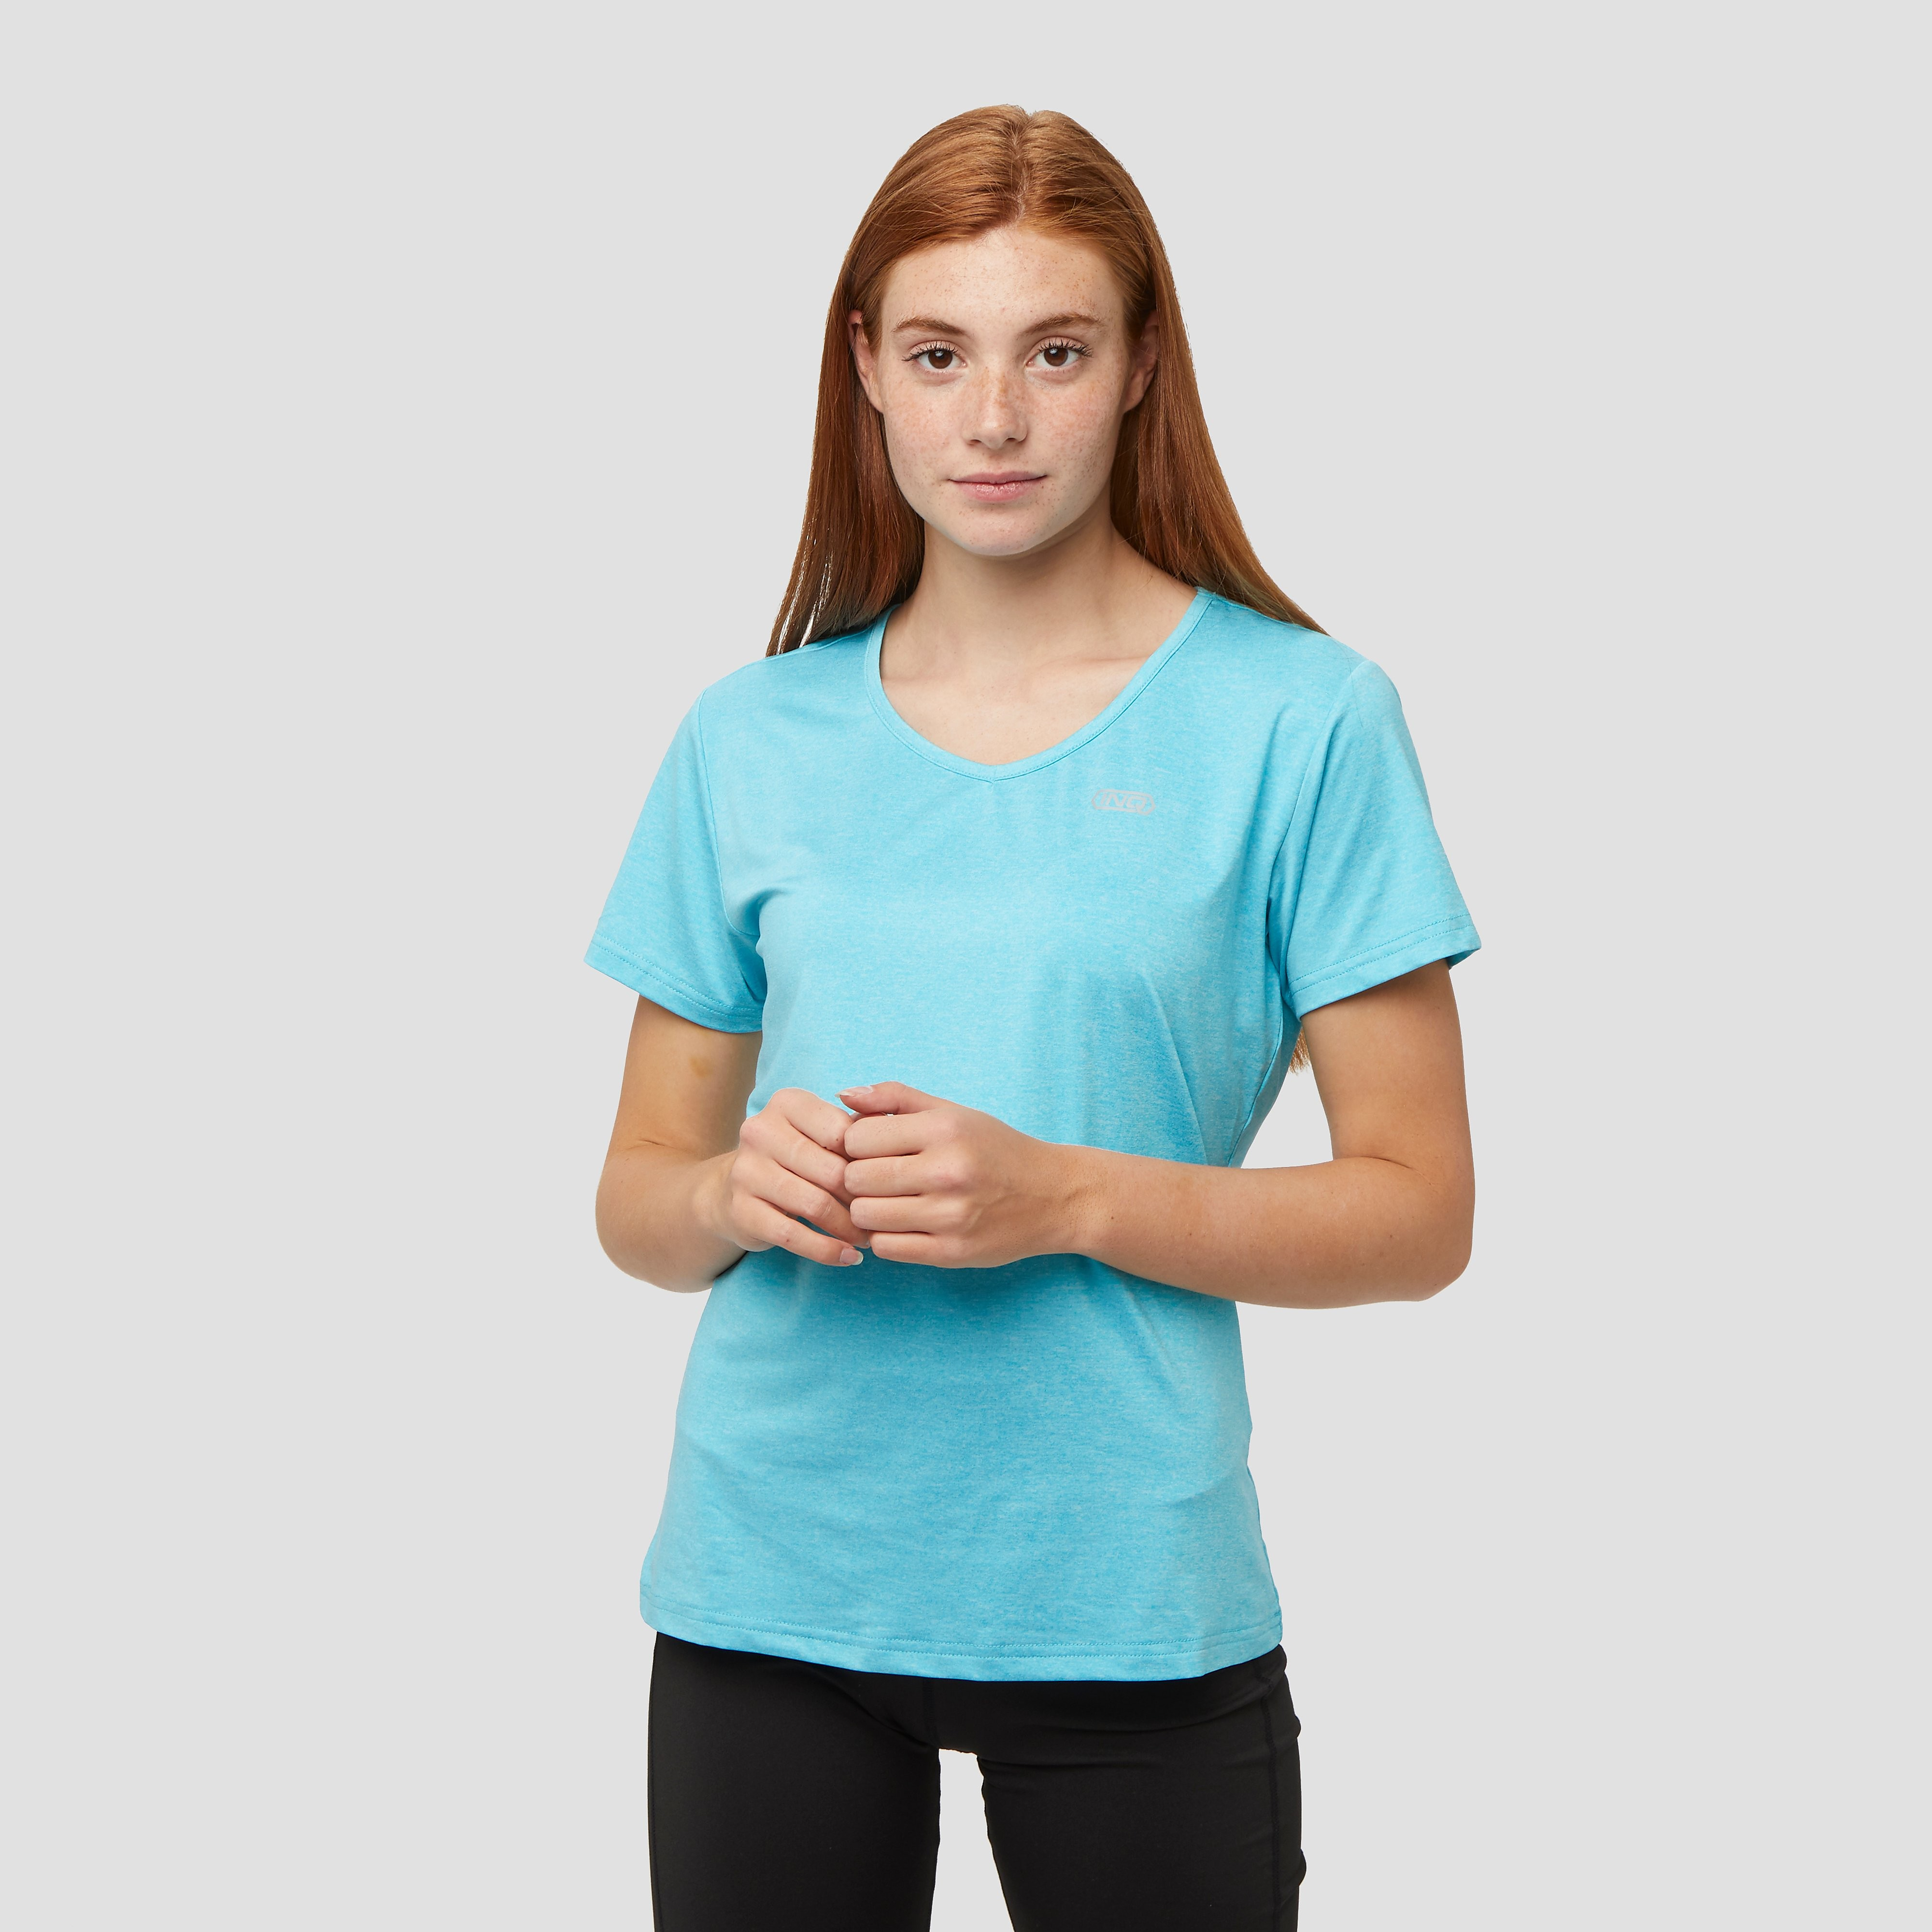 INQ Tempo 2 hardloopshirt blauw dames Dames